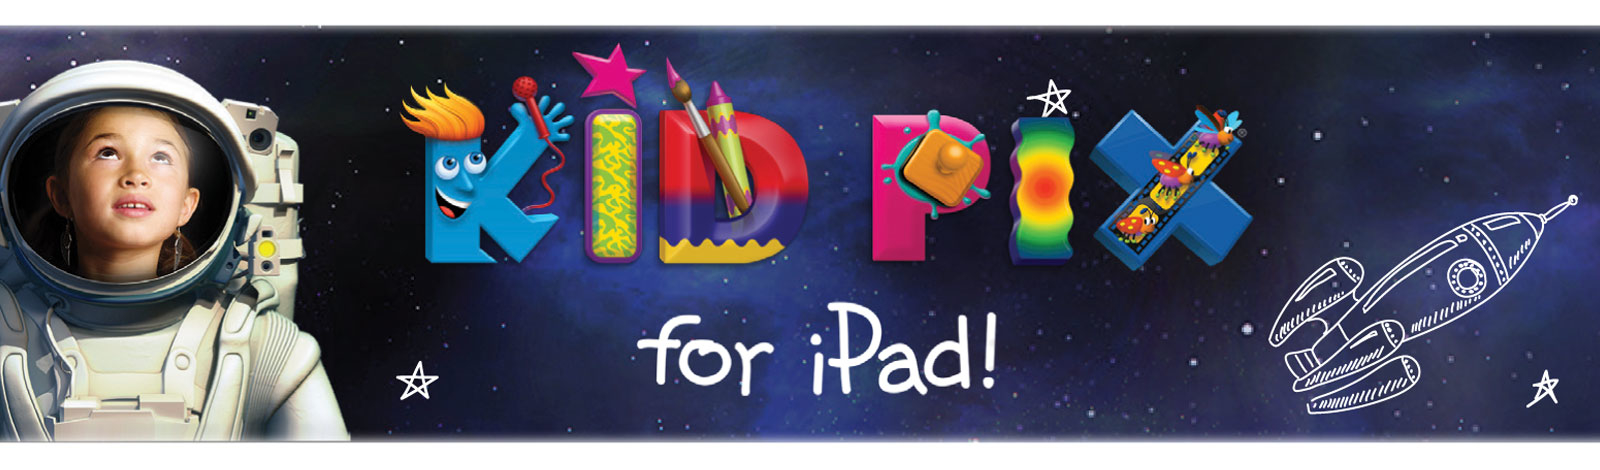 KID PIX for the iPad